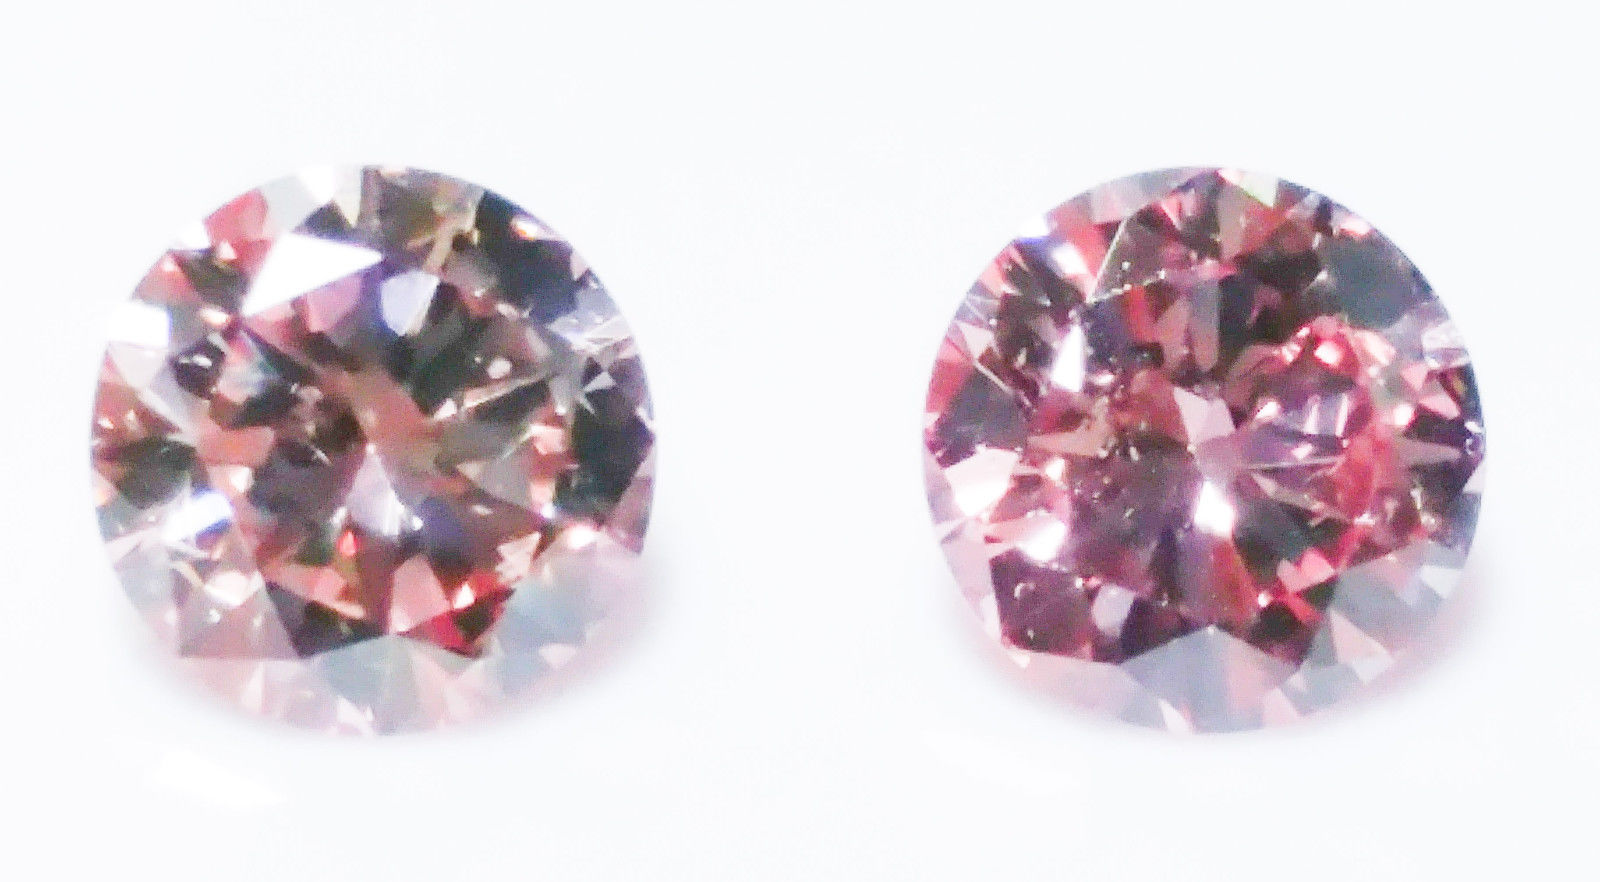 0.44ct Natural Loose Matching Pair Argyle Fancy Orangy Pink Color Diamond GIA